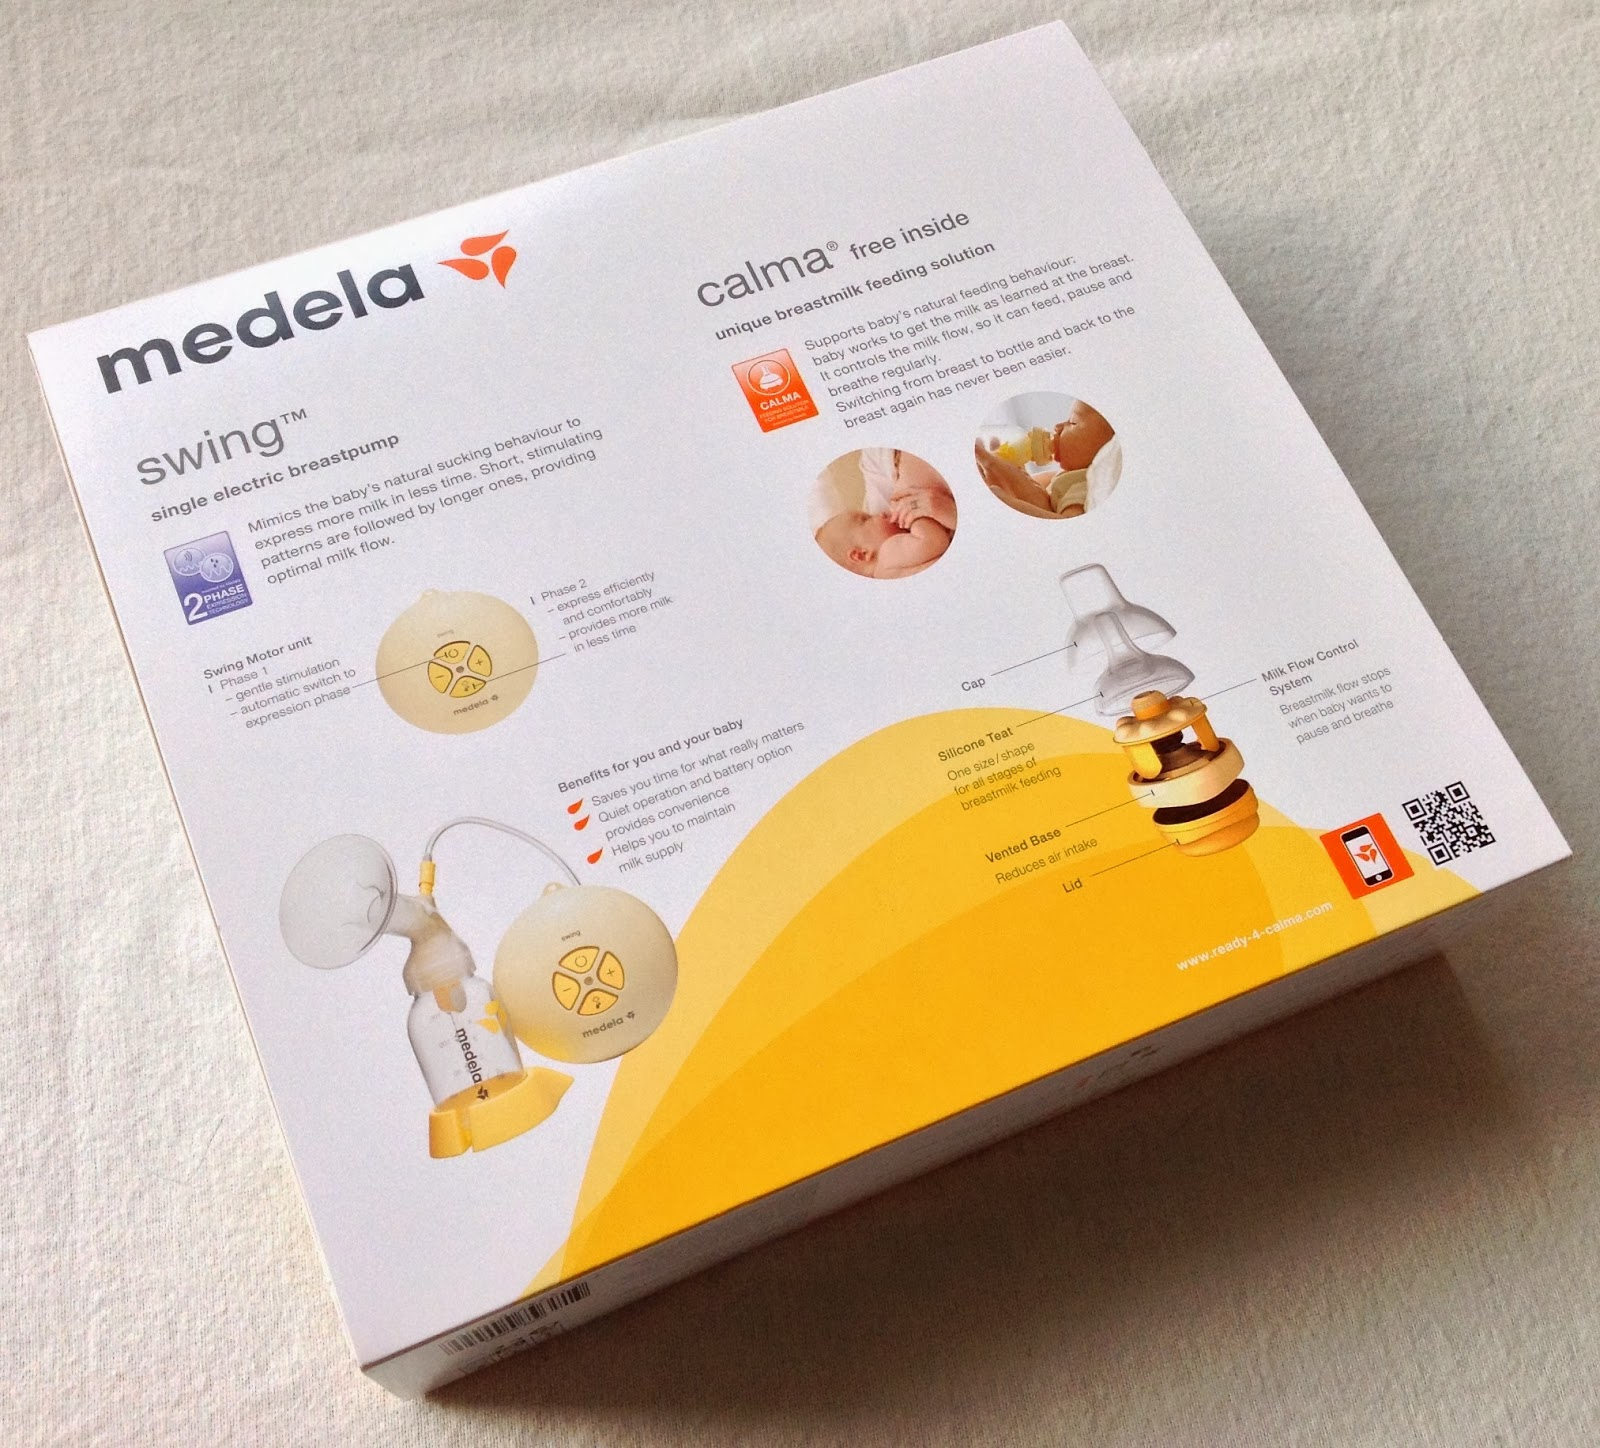 I Am Mumalicious Medela Swing Electric Breast Pump Review-4701